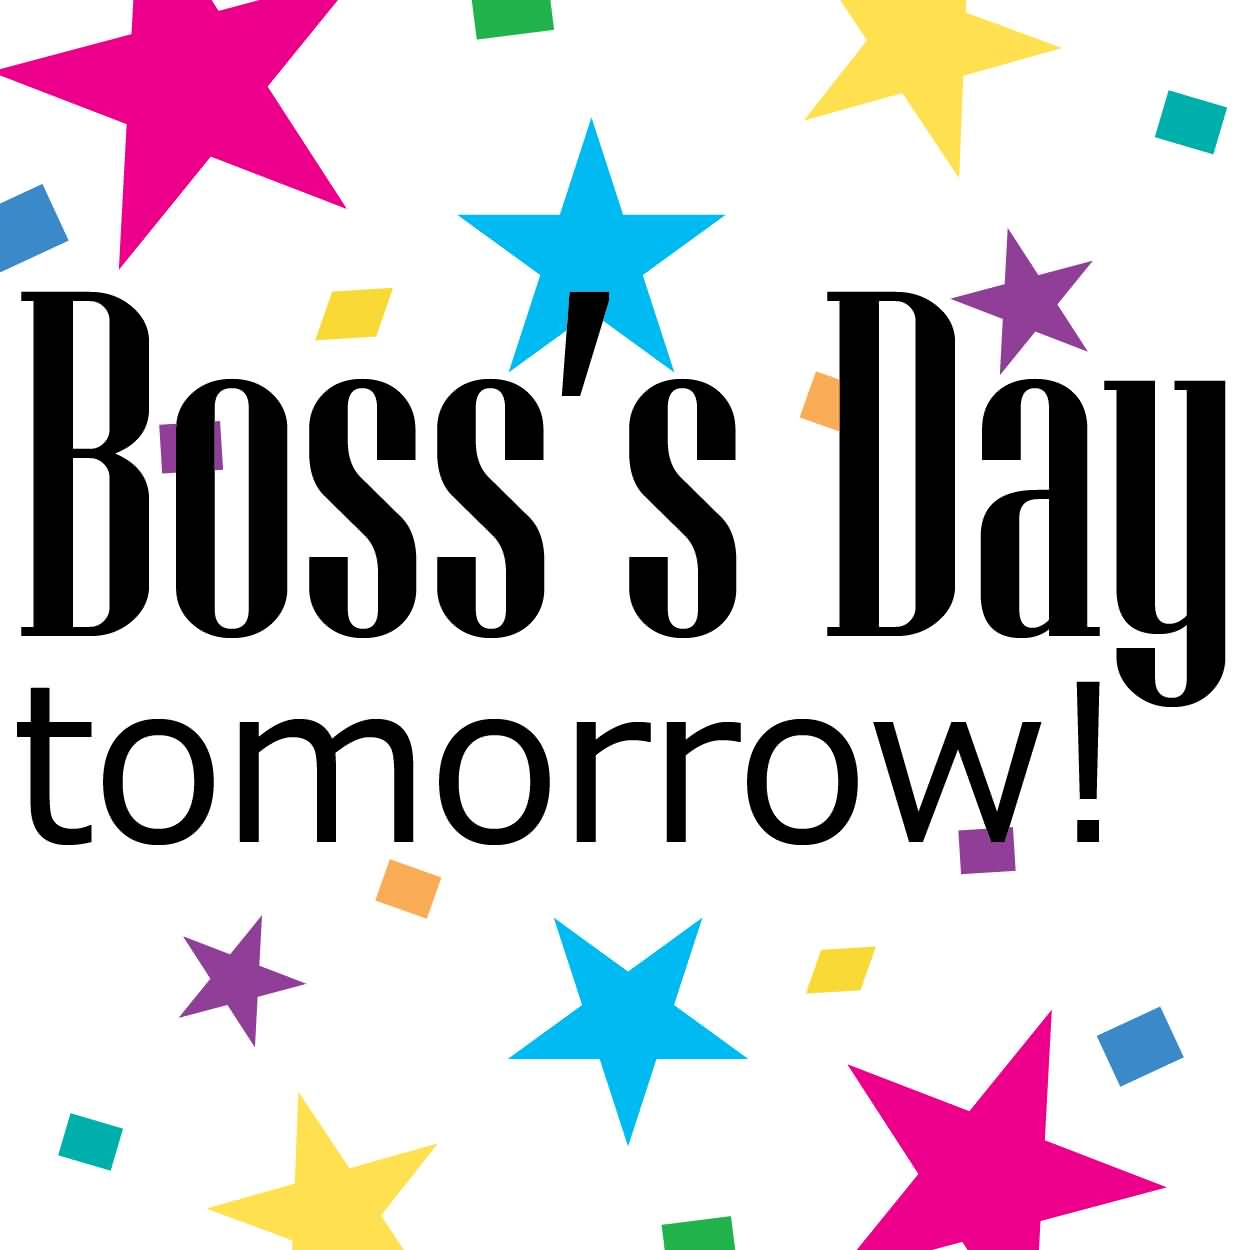 40 most beautiful happy boss day 2016 greetings pictures and images rh askideas com bosses day 2017 clipart national bosses day clipart